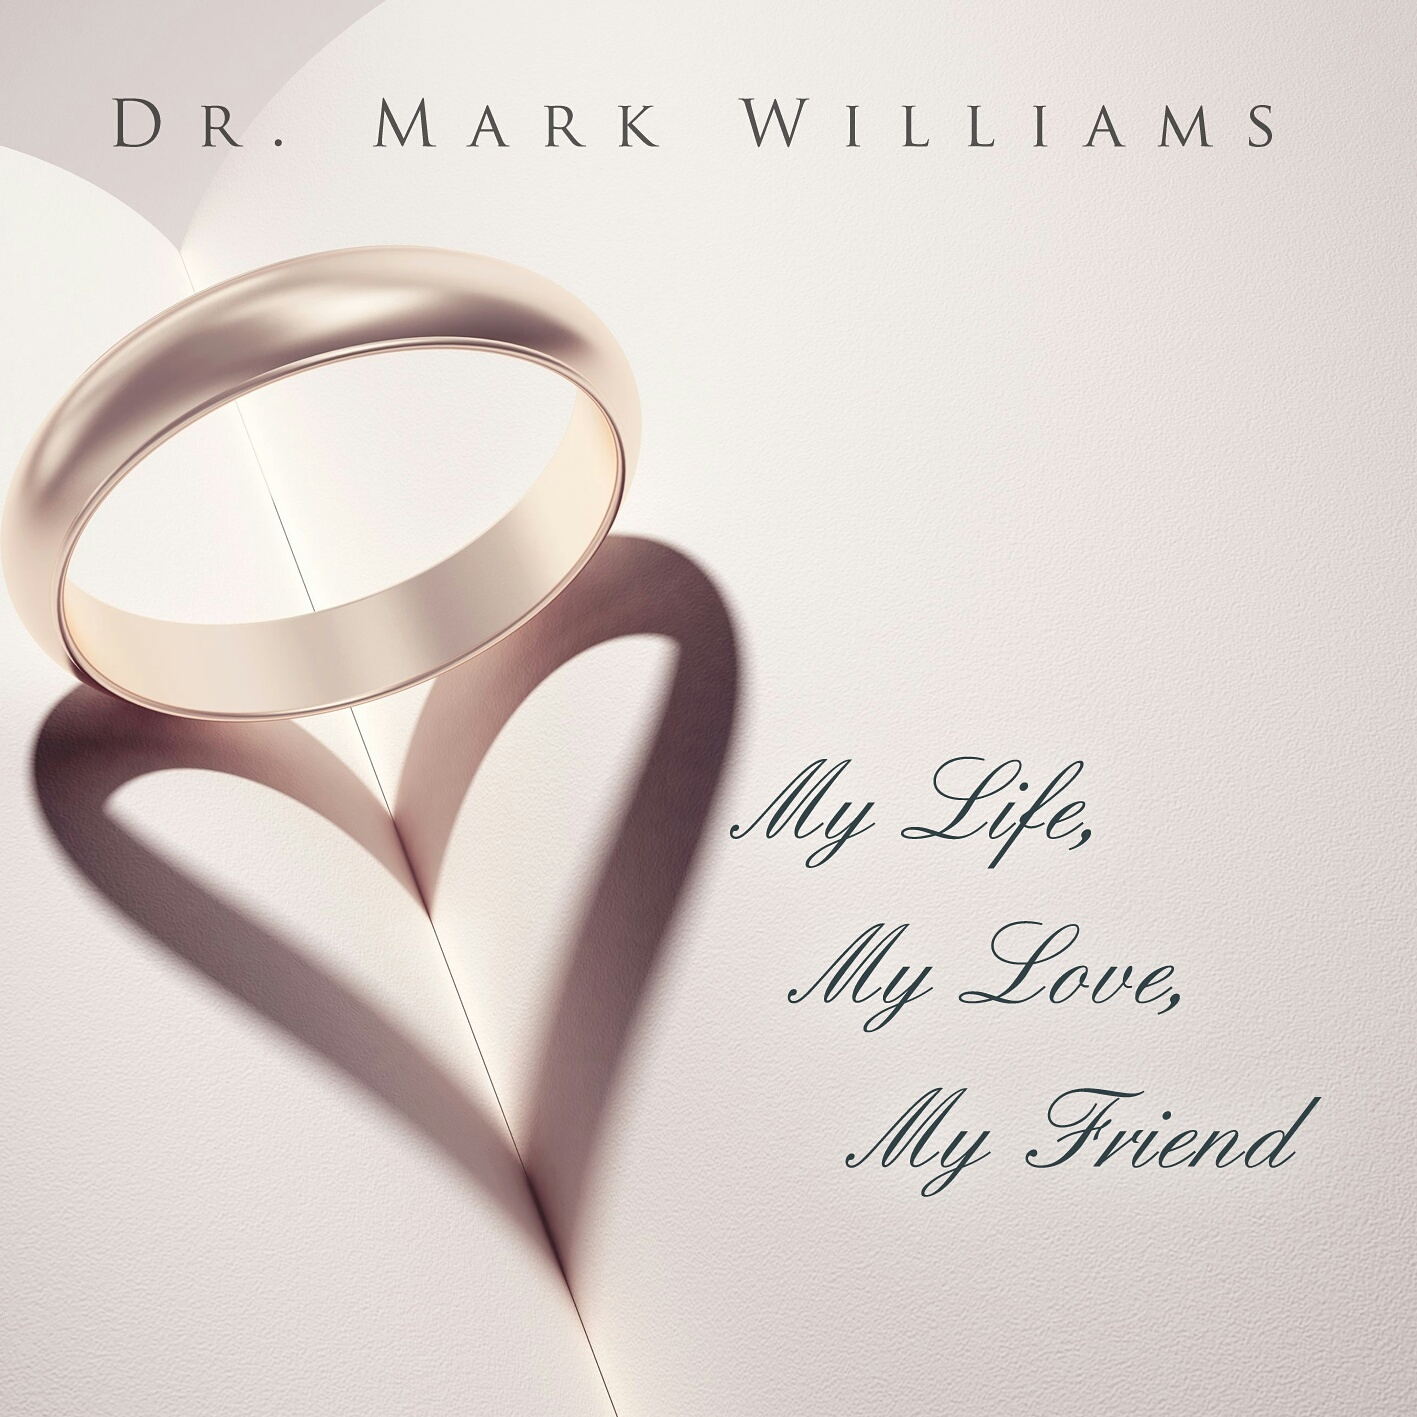 My Life My Love My Friend by Dr. Mark Williams